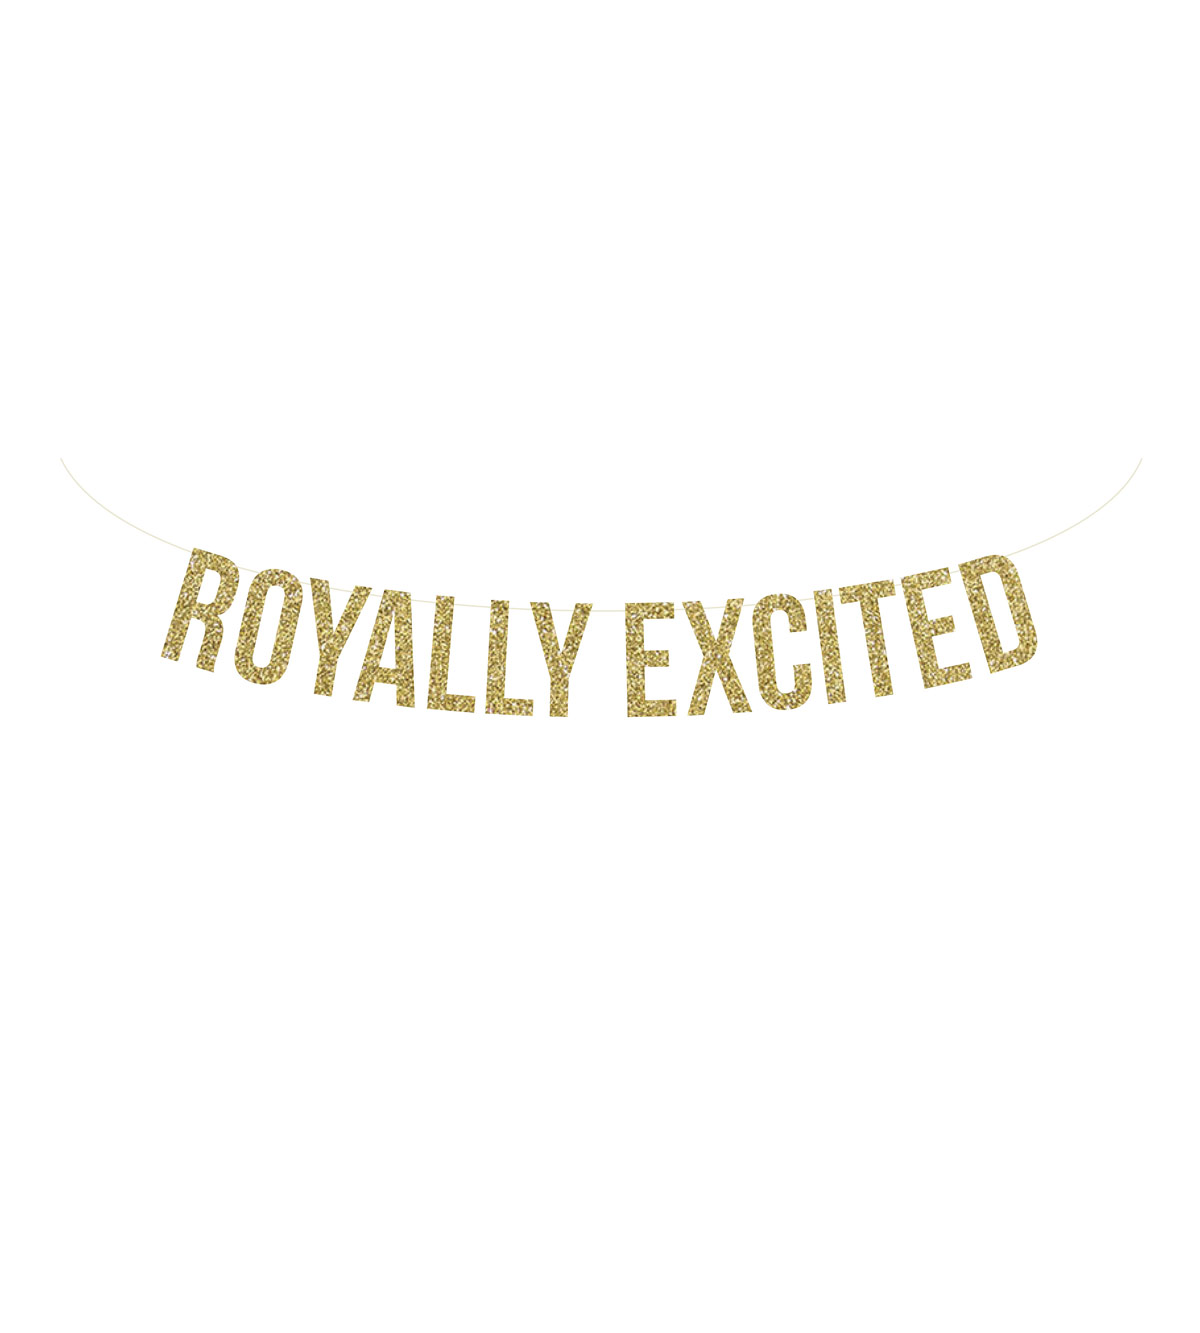 Royally Excited Banner